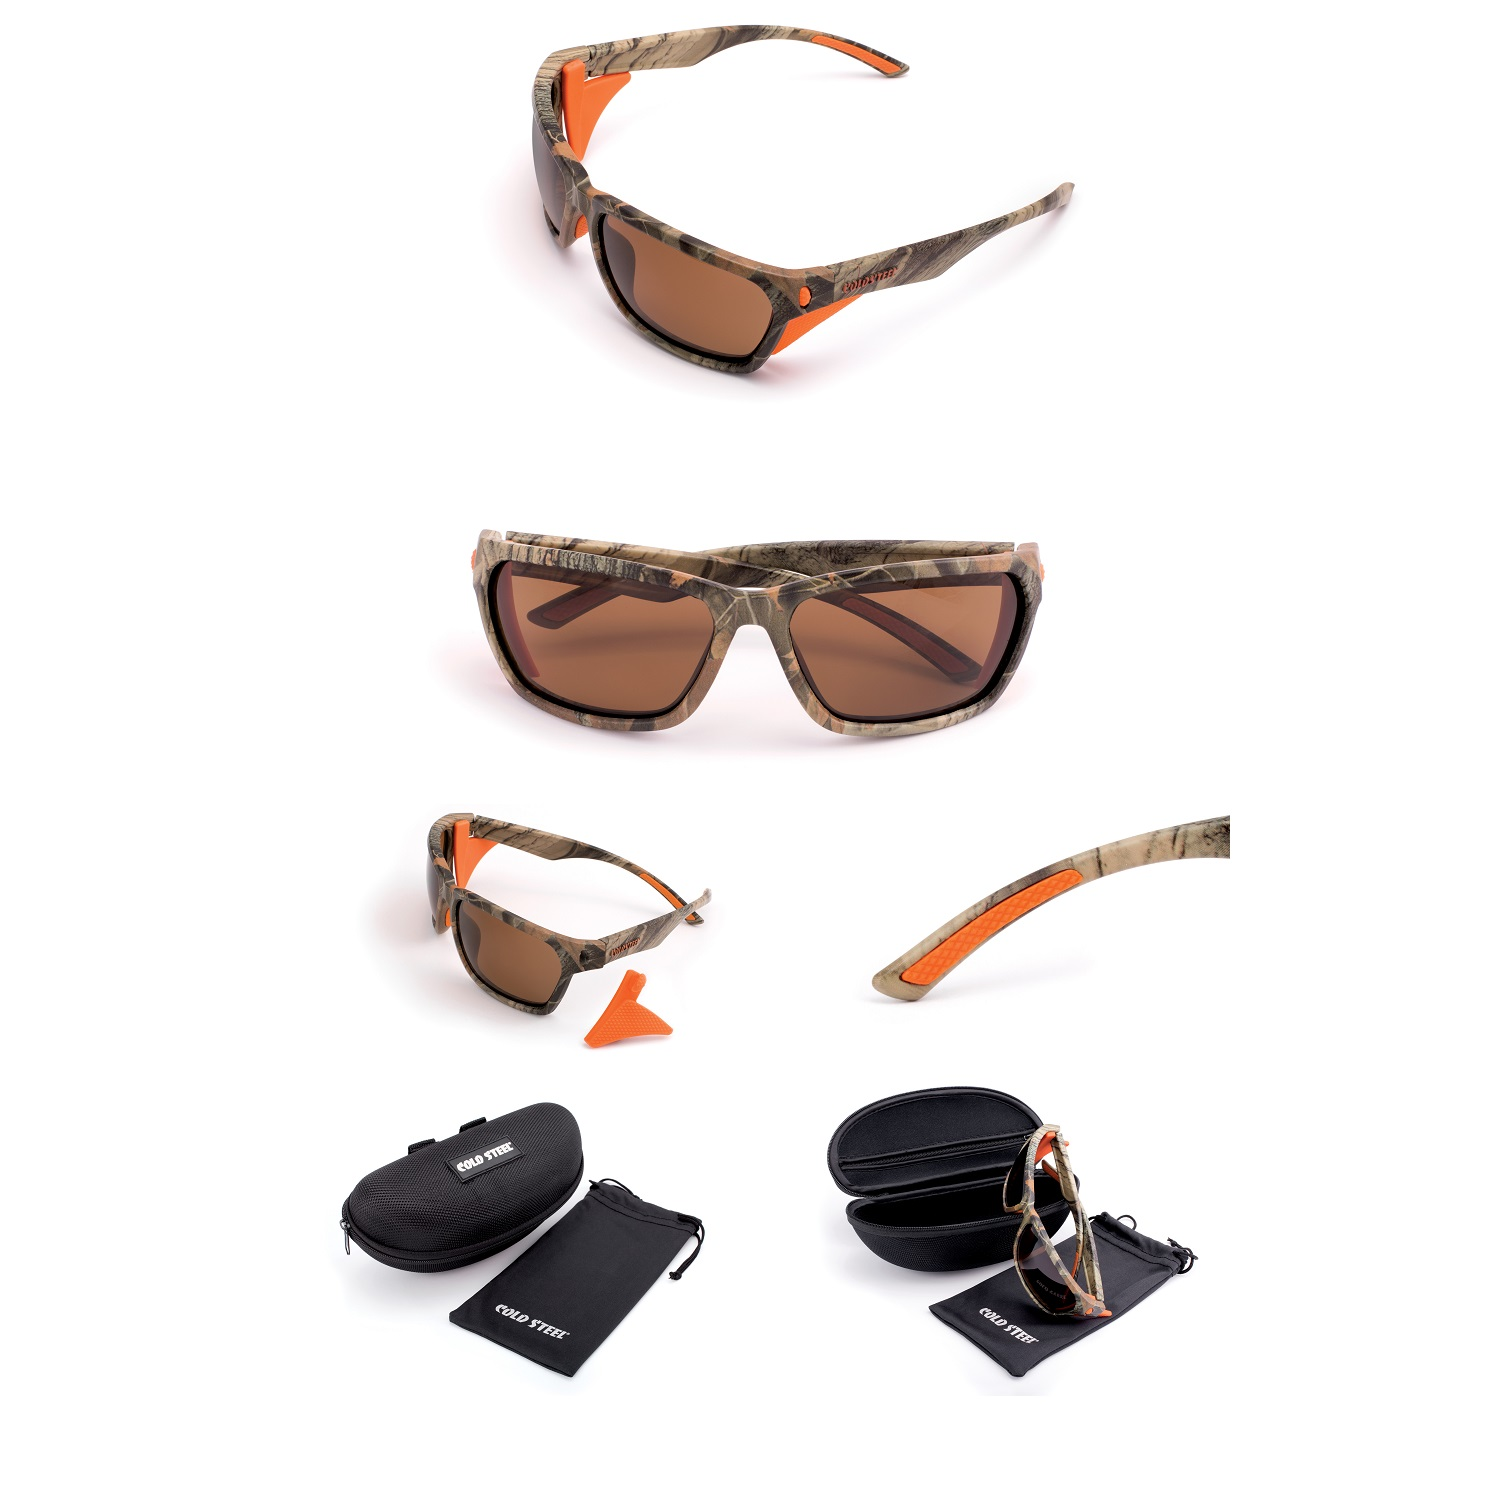 Battle Shades Mark III, Cammo Frame, Brown Polarized Lens